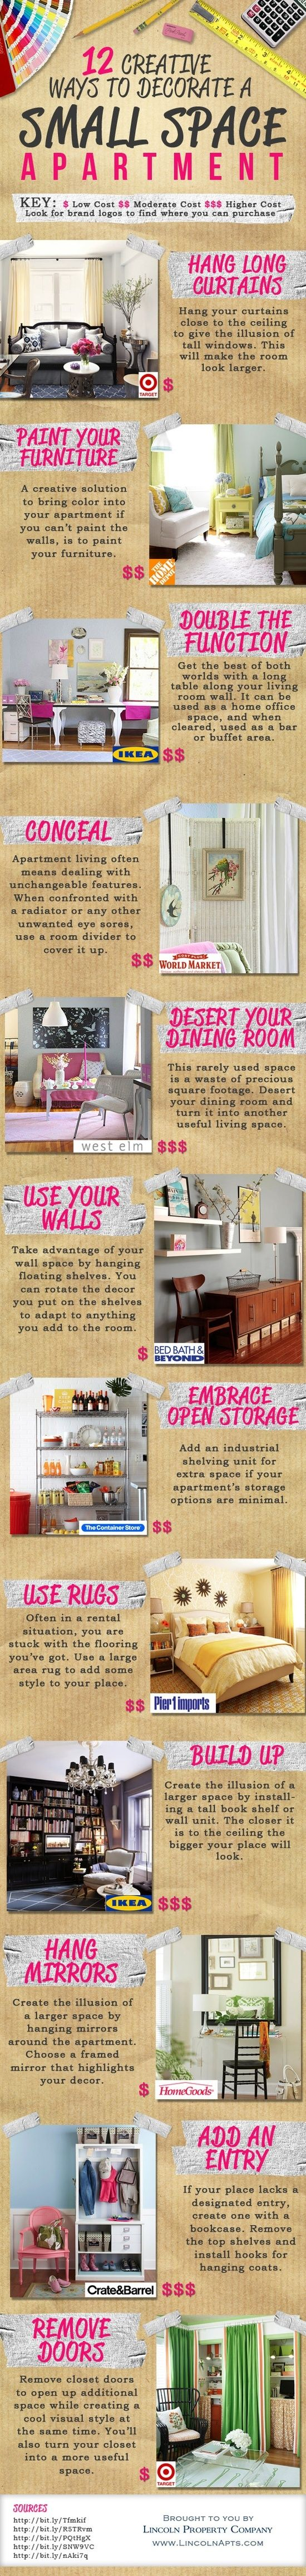 decorating your apartment - home -2- me